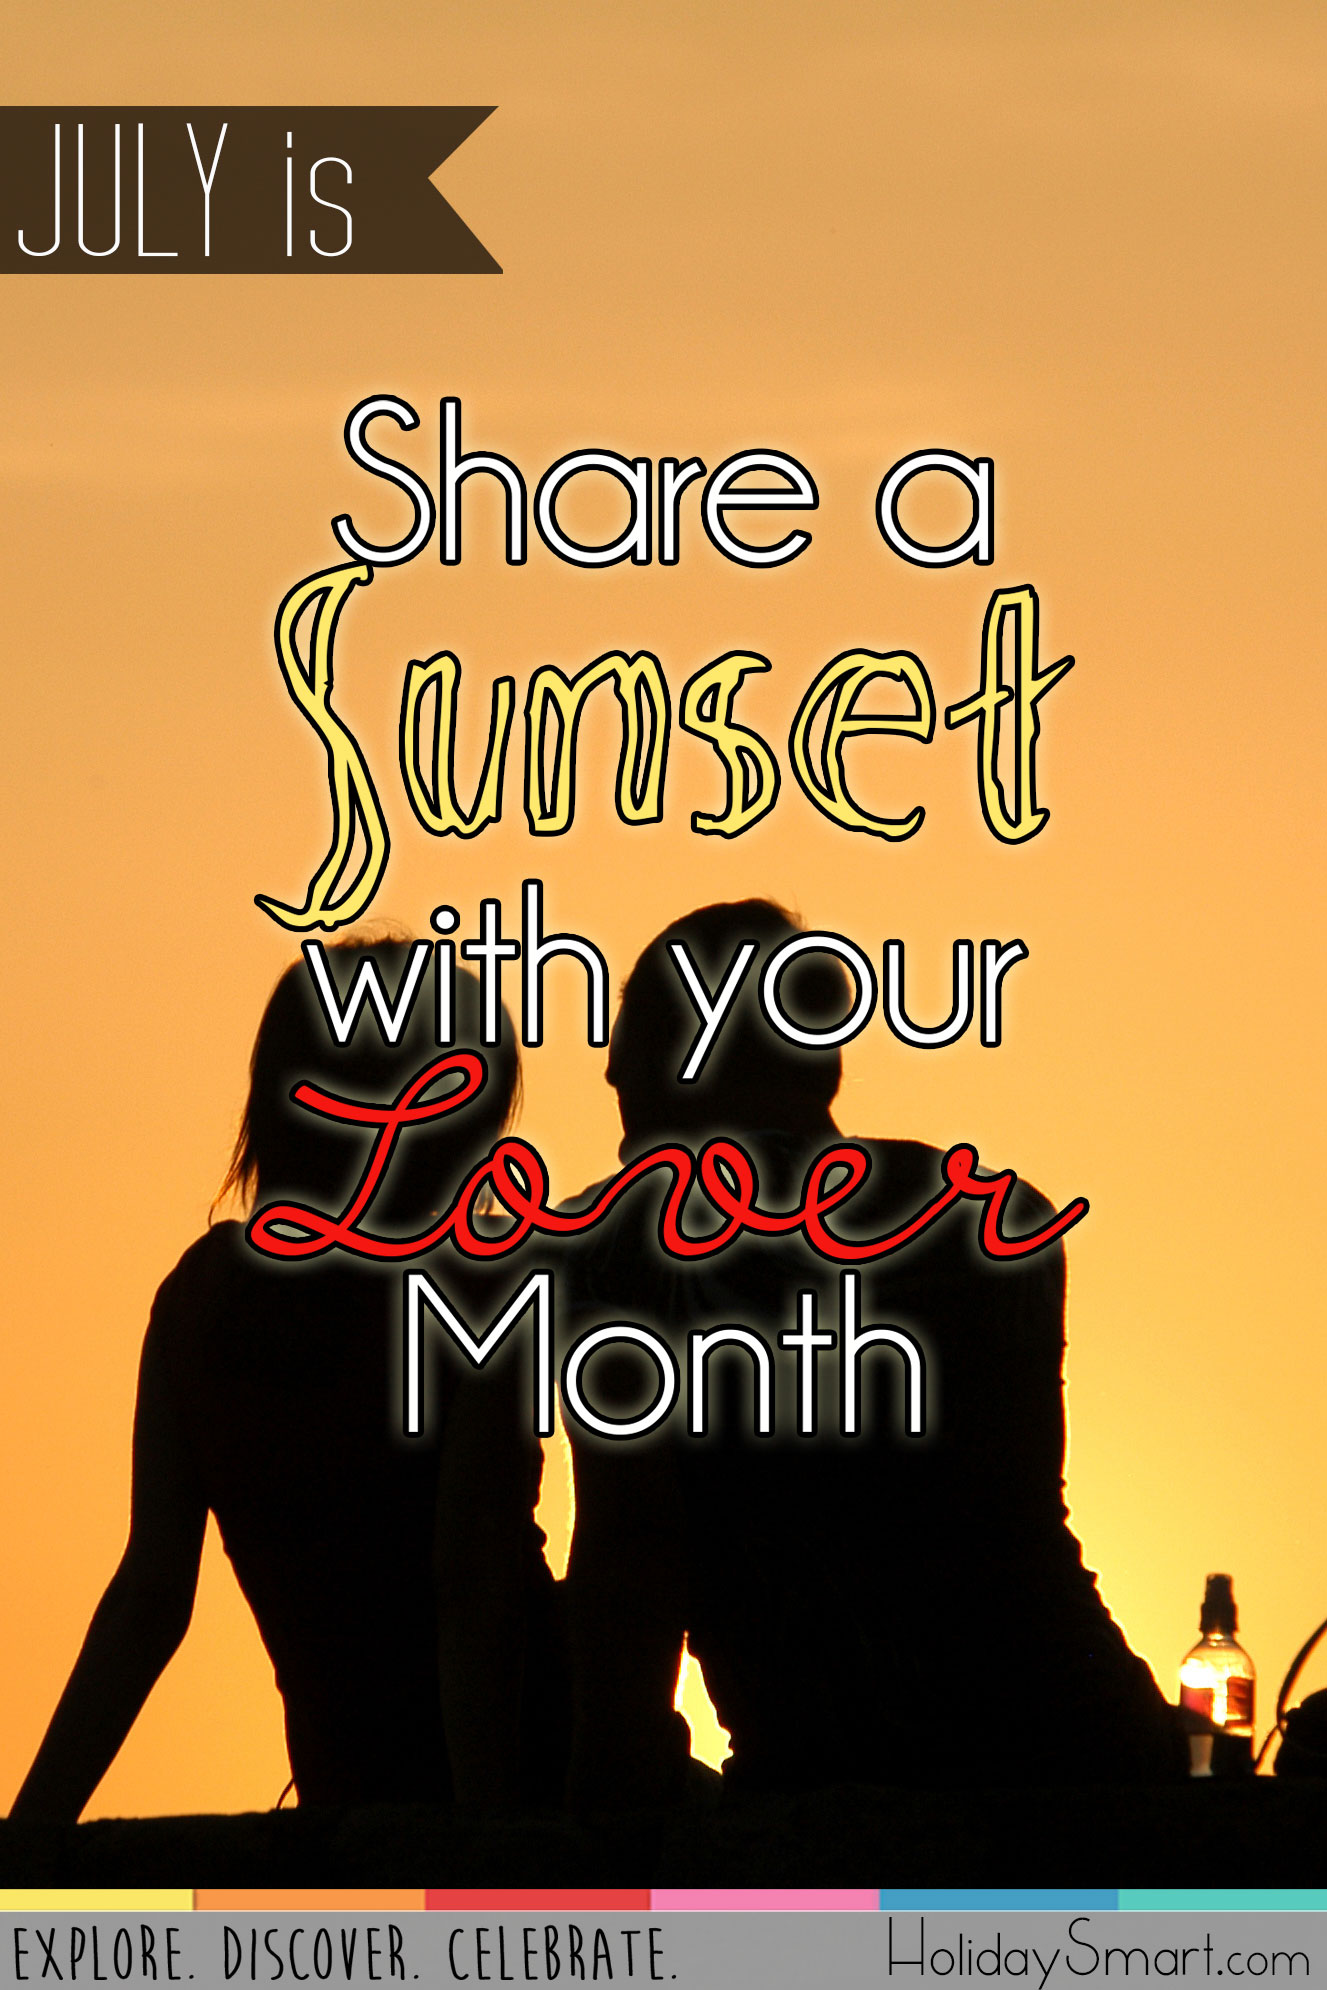 July is National Share a Sunset with Your Lover Month!